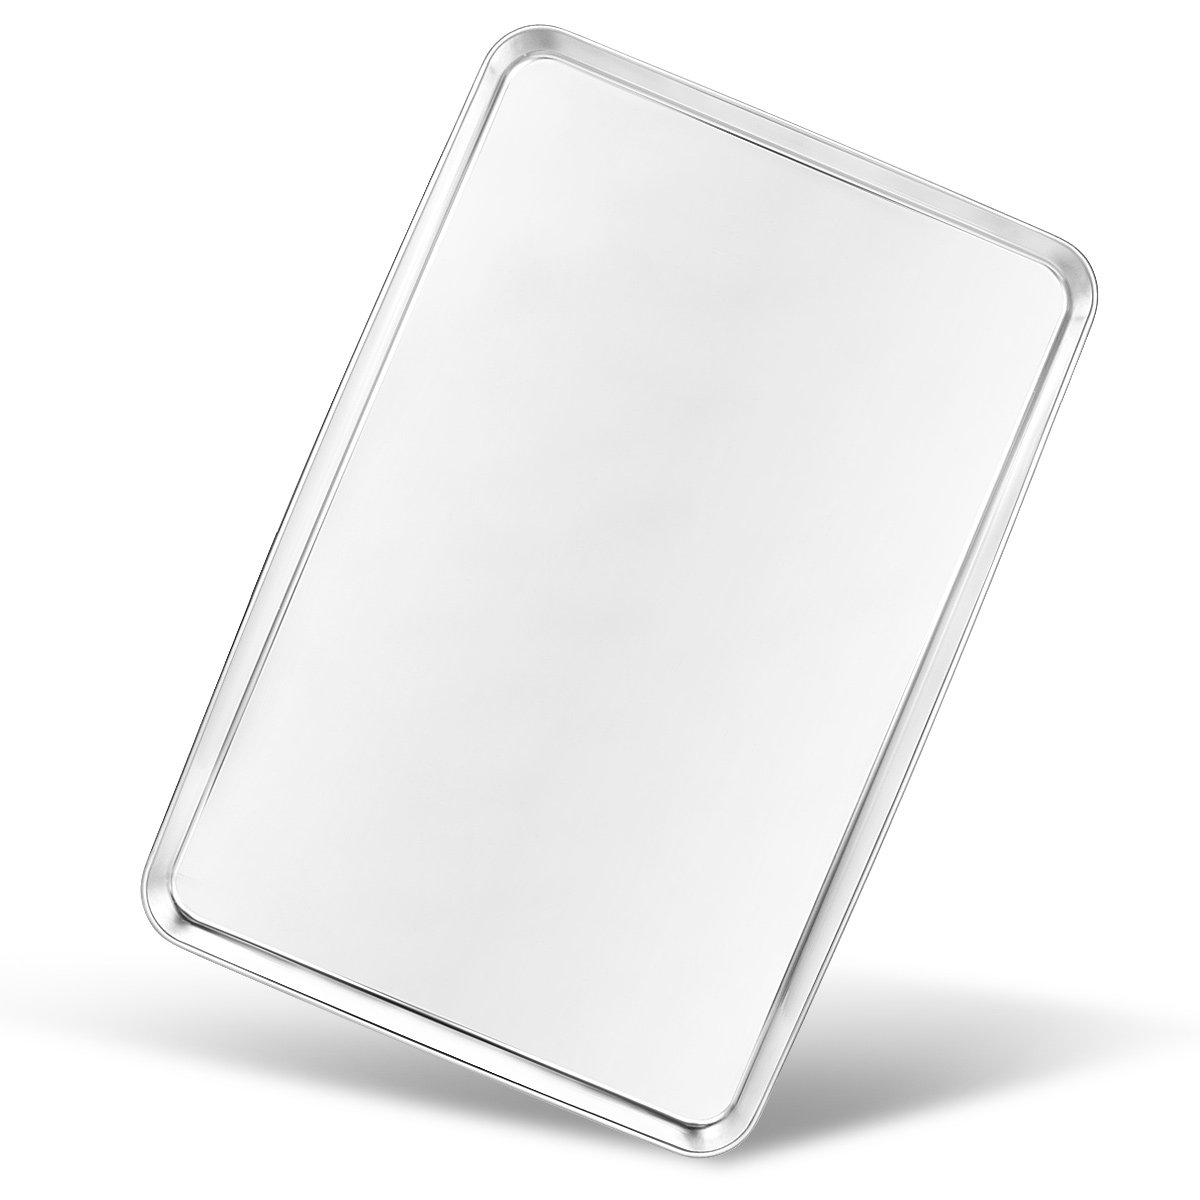 Bastwe Baking Sheet, Stainless Steel Large Cookie Sheet Toaster Oven Baking Pan, Rectangle Size 24×16×1 inch, Non Toxic & Healthy, Superior Mirror Finish & Rustproof, Dishwasher Safe & Easy Clean